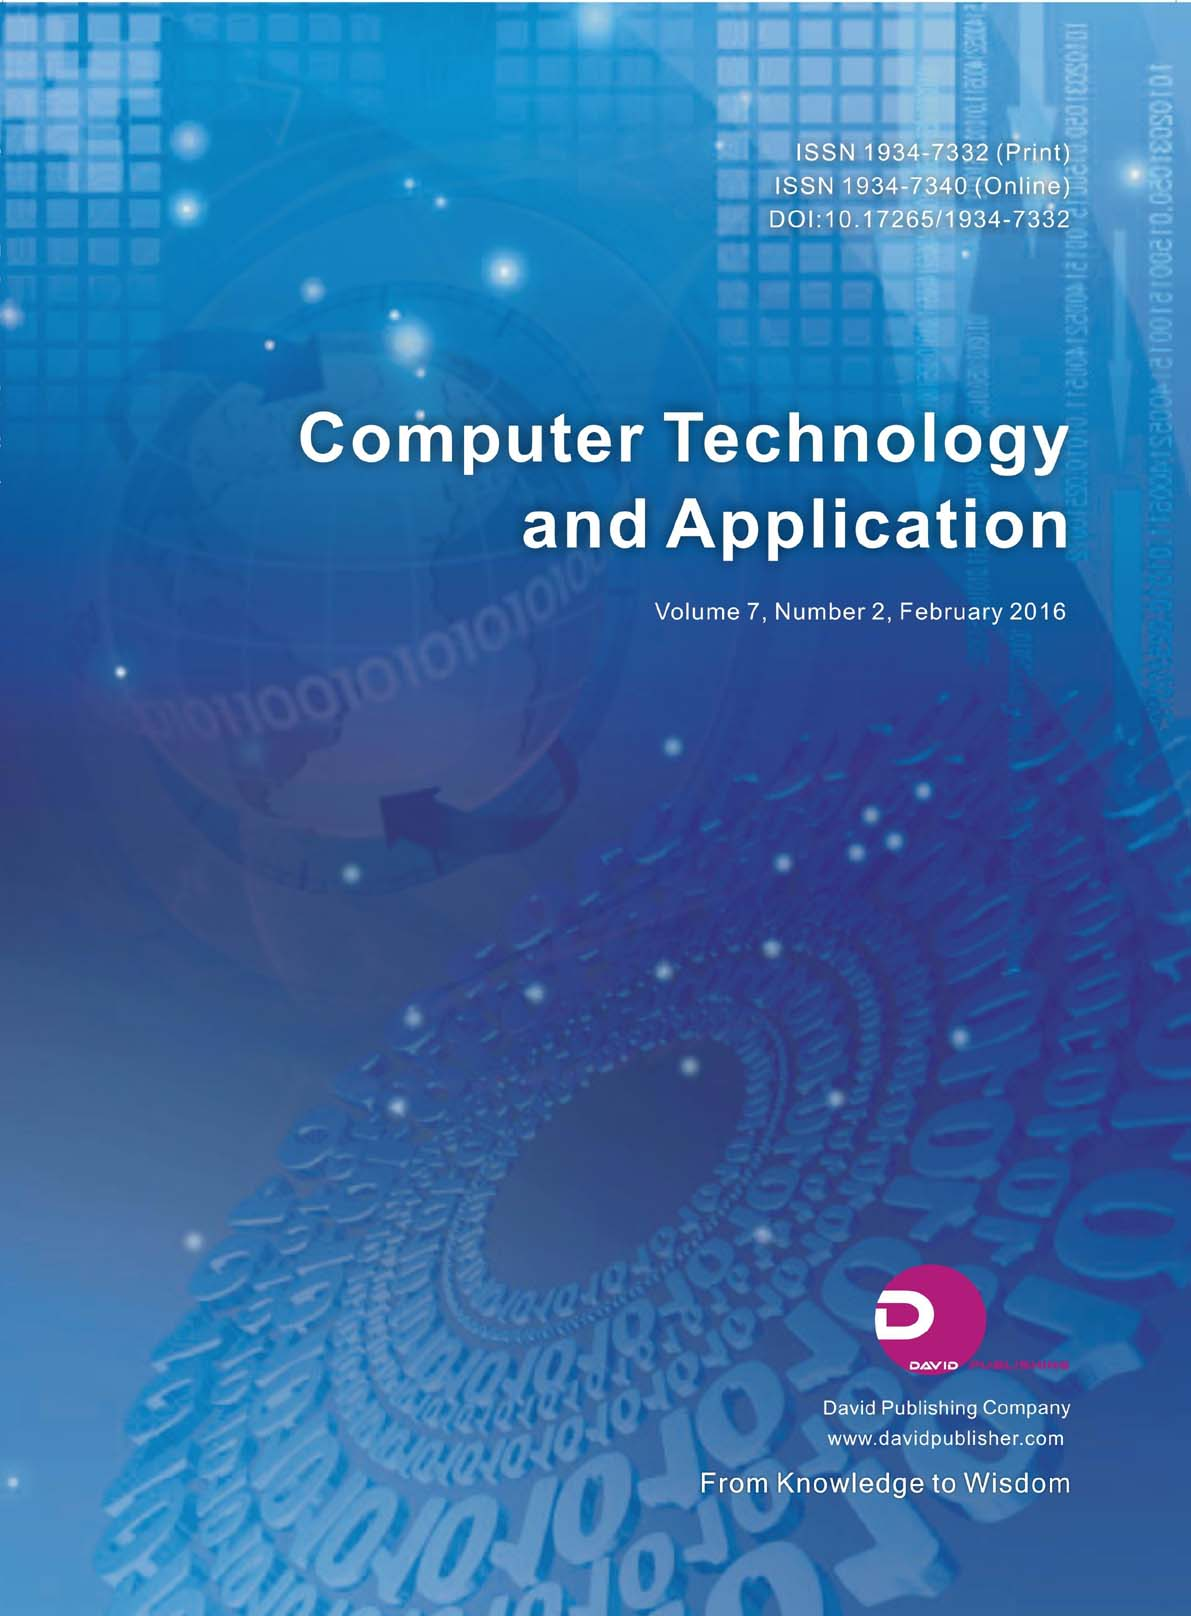 Computer Technology and Application